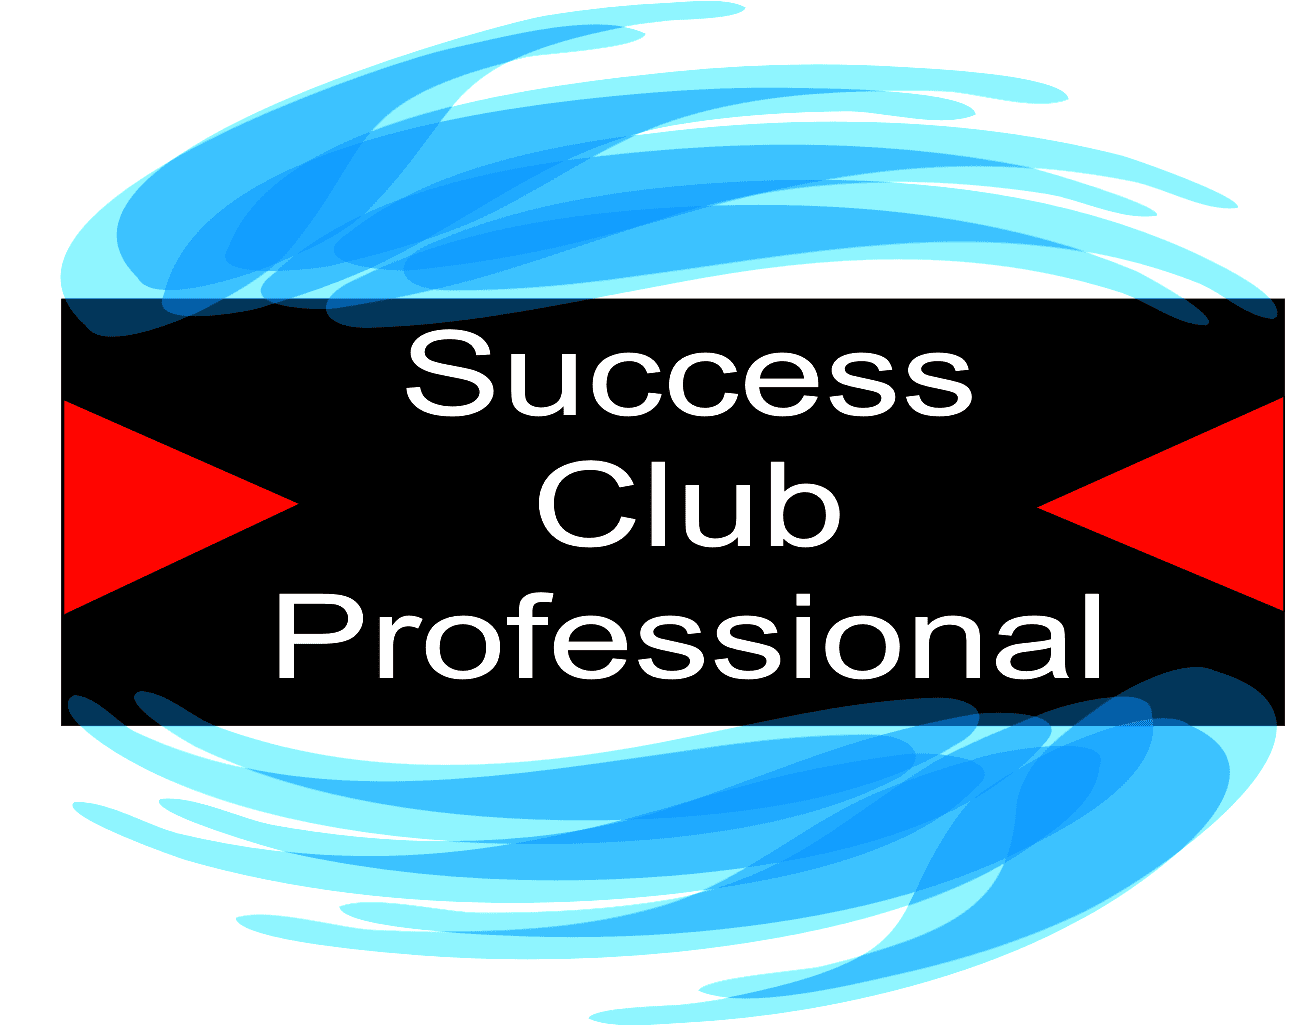 Success Club Professional